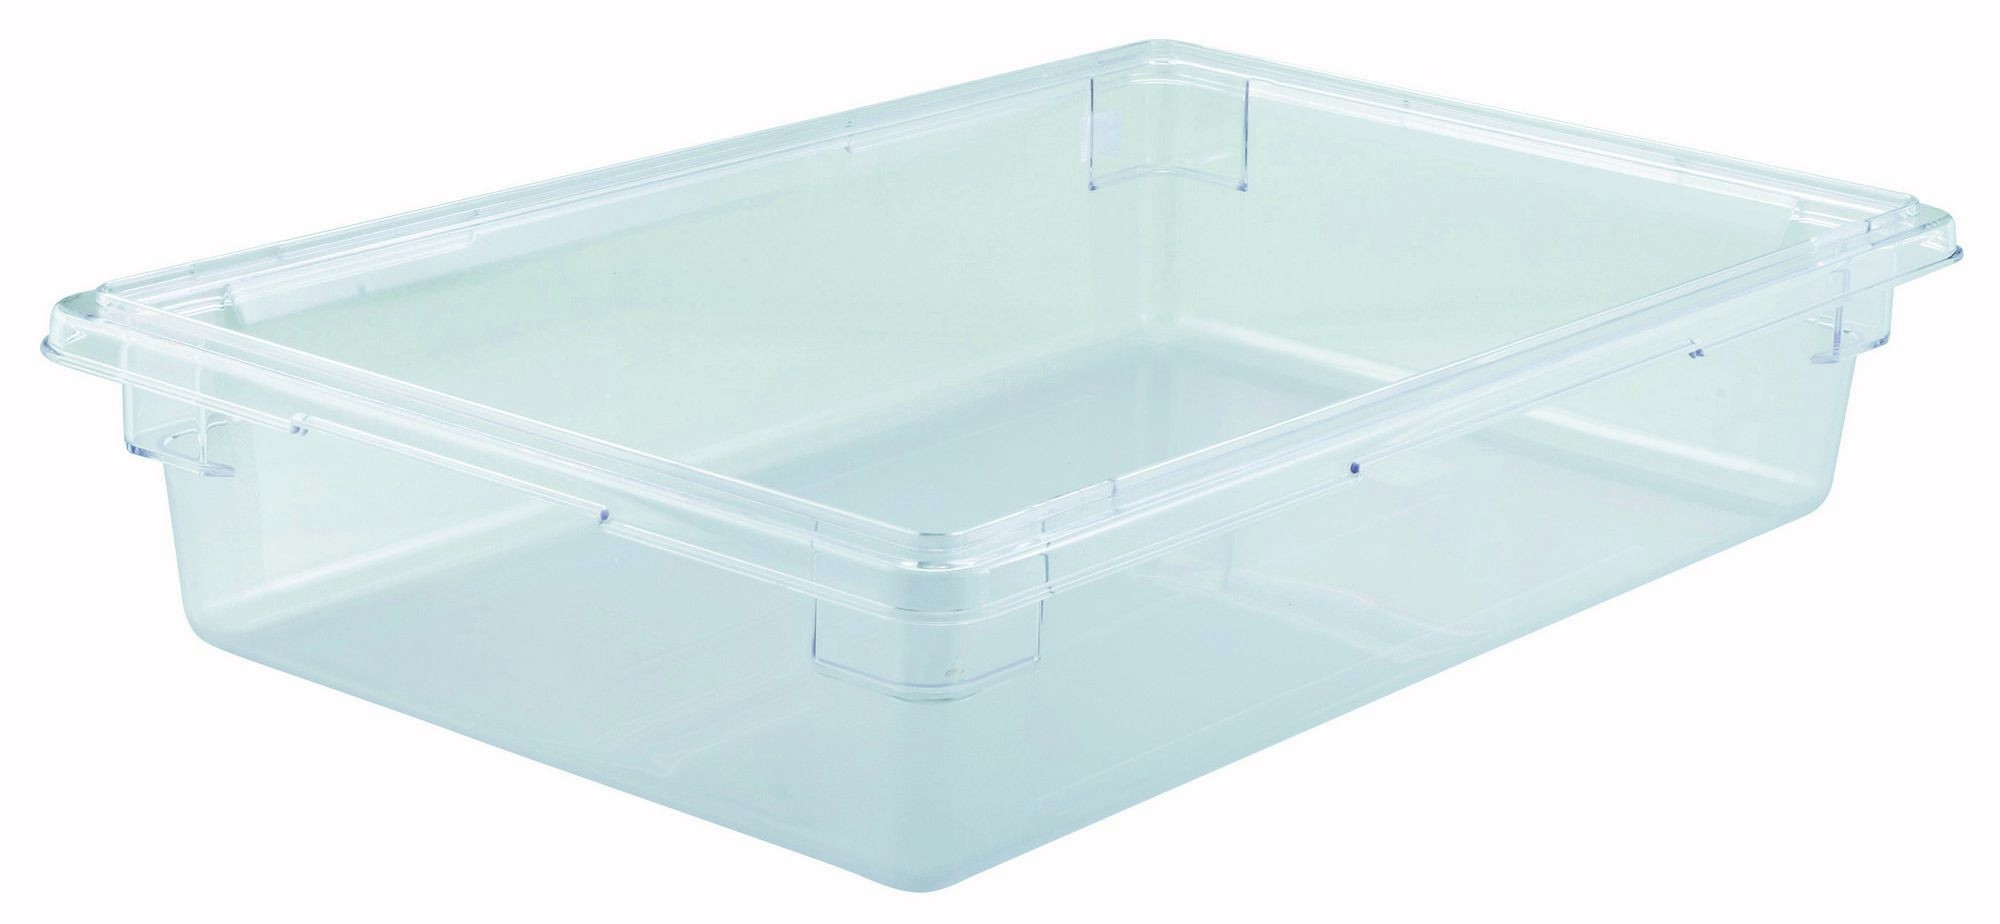 "Winco PFSF-6 Polycarbonate Food Storage Box, 18"" x 26"" x 6"""